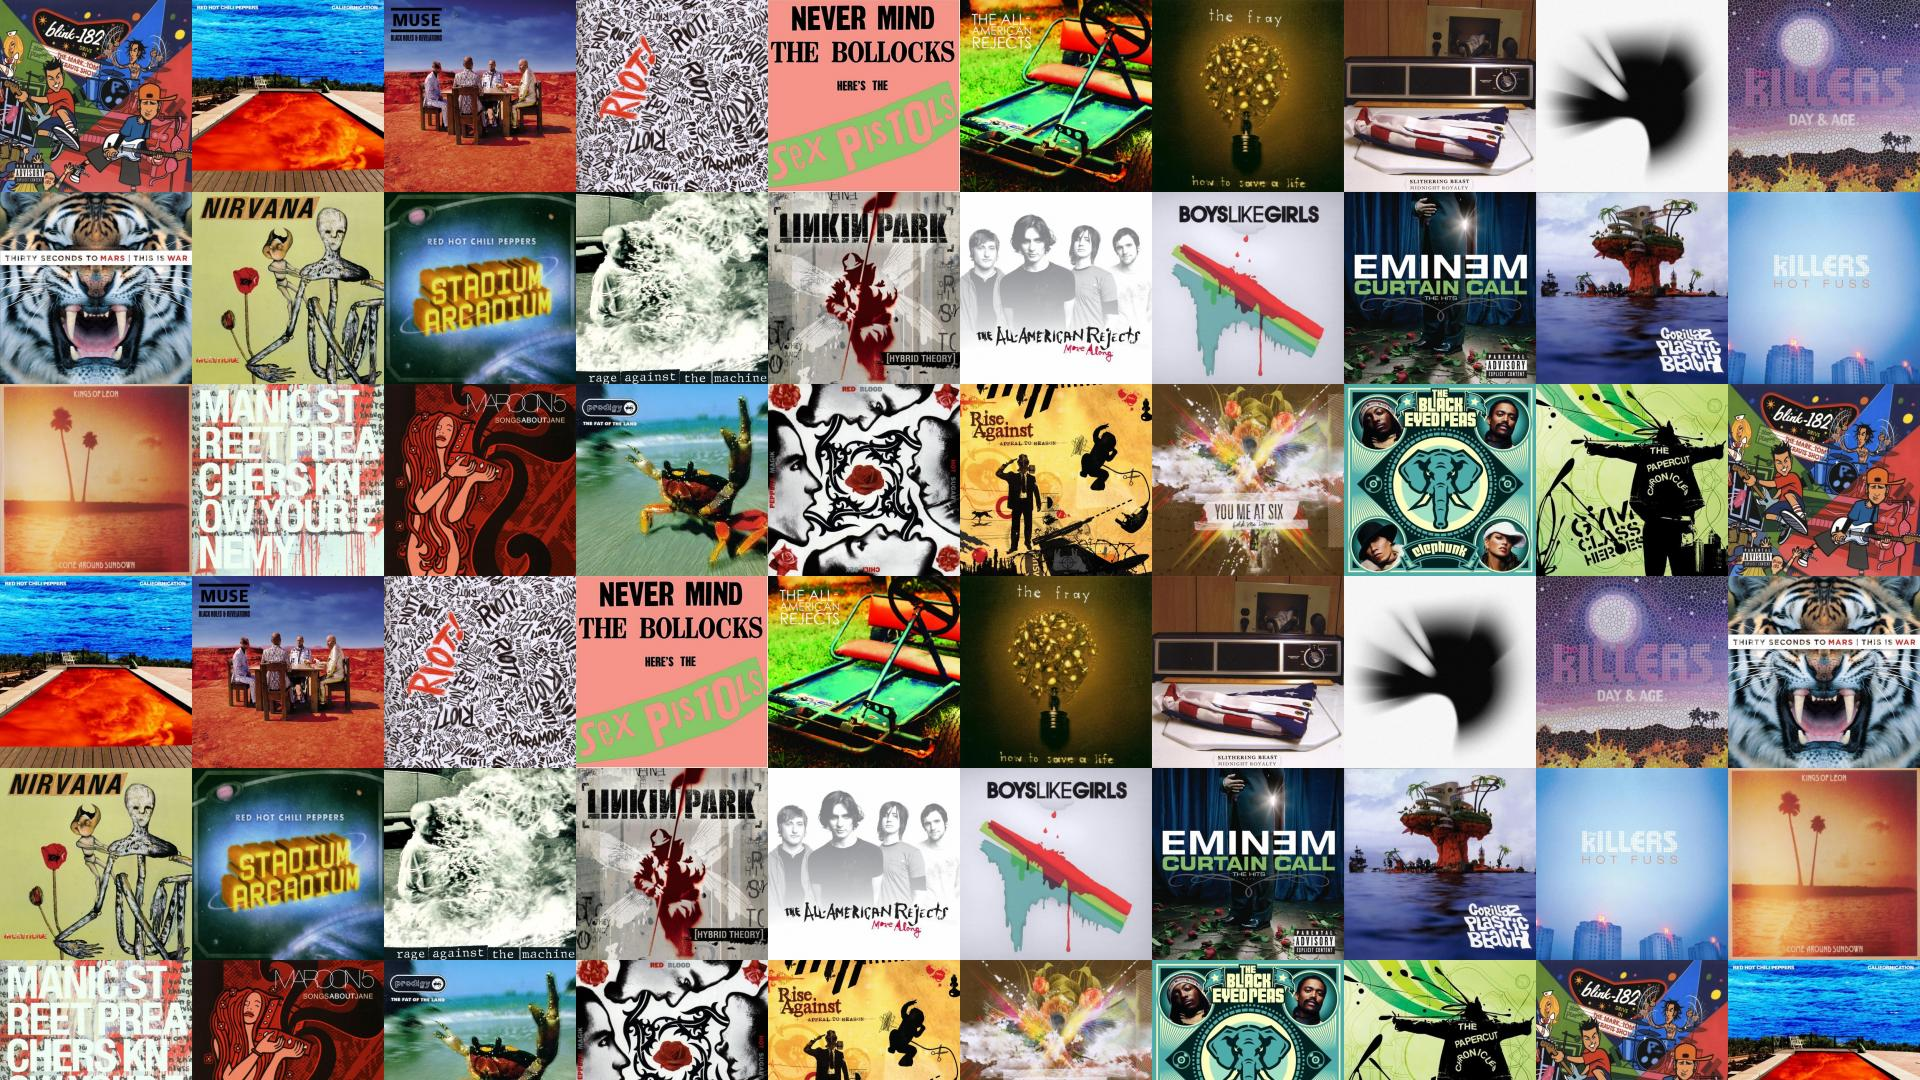 Blink 182 Rock Show Red Hot Chili Peppers Wallpaper Tiled